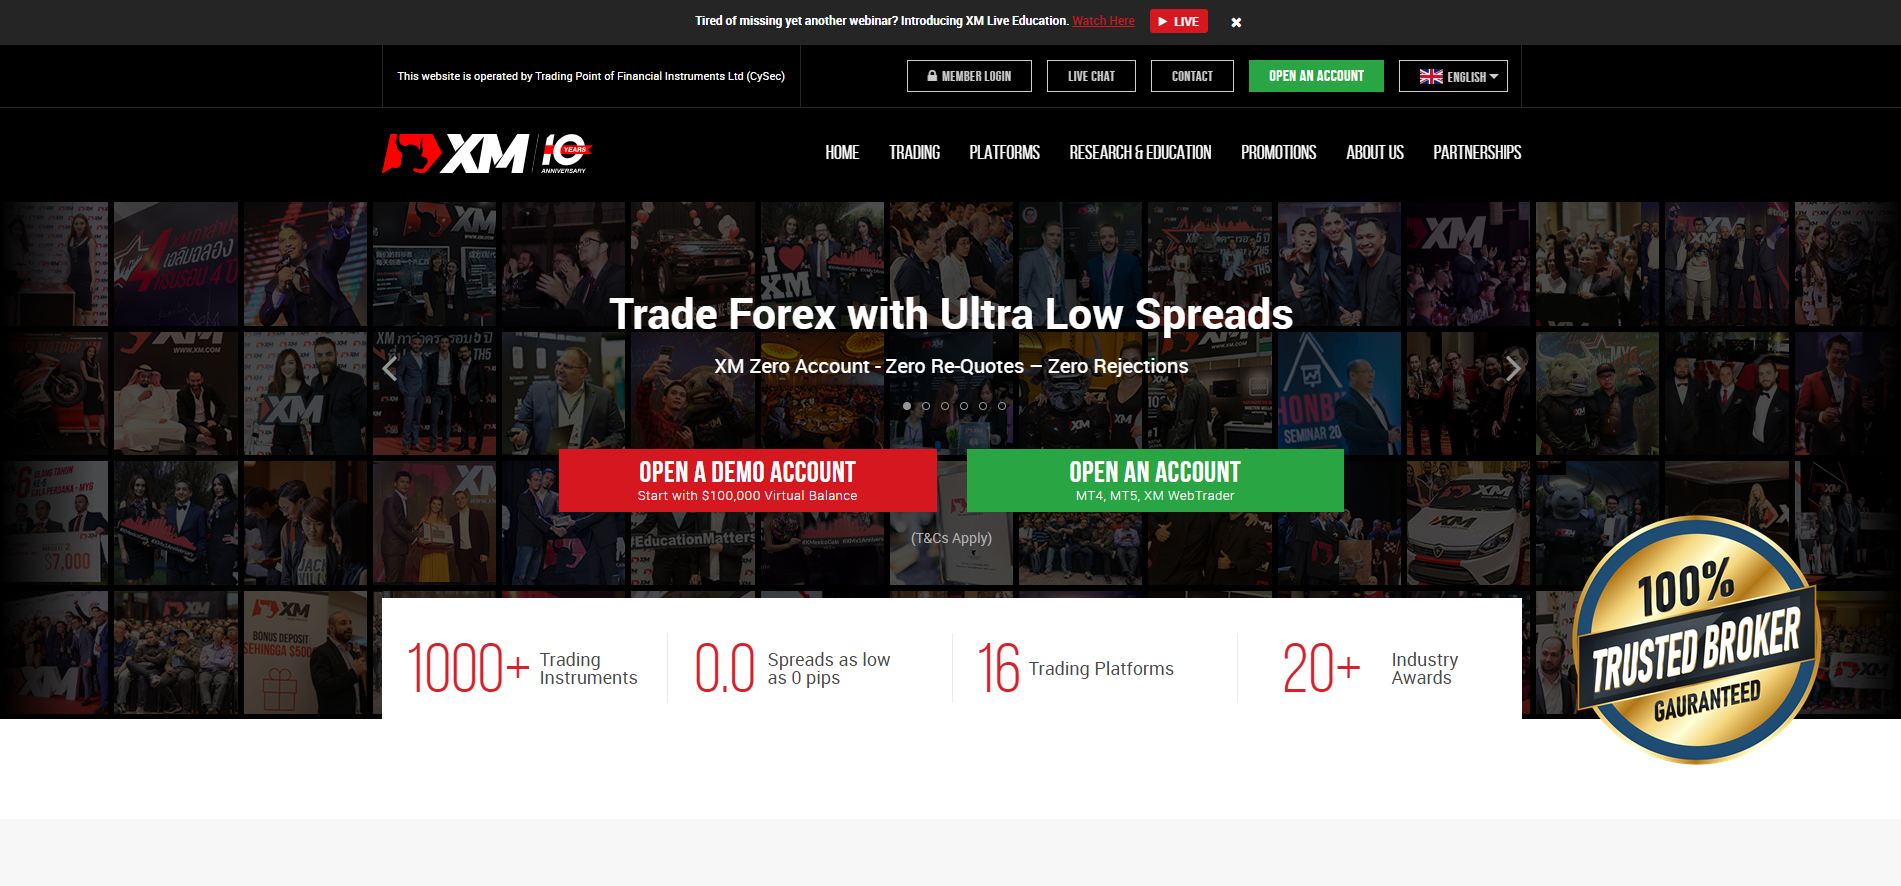 The official website of the Forex Broker XM